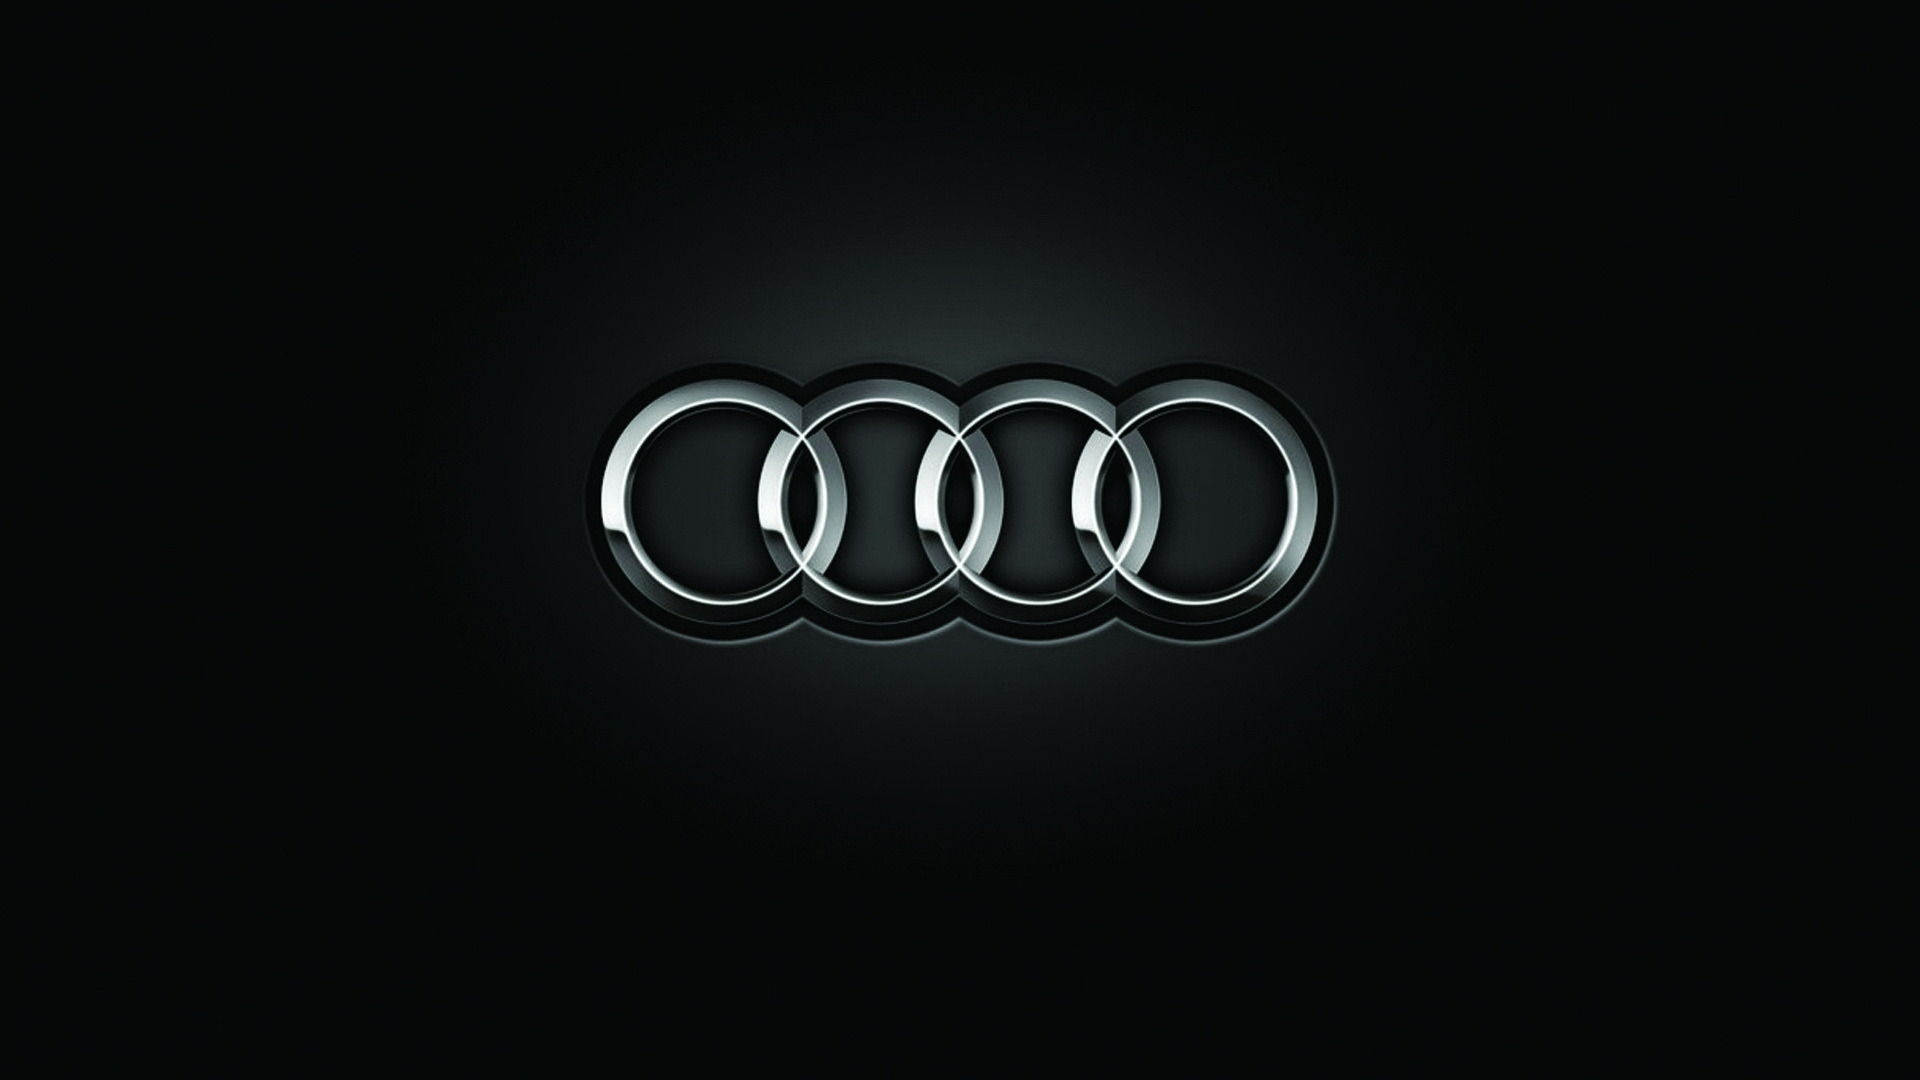 42 Audi 4k Wallpaper On Wallpapersafari